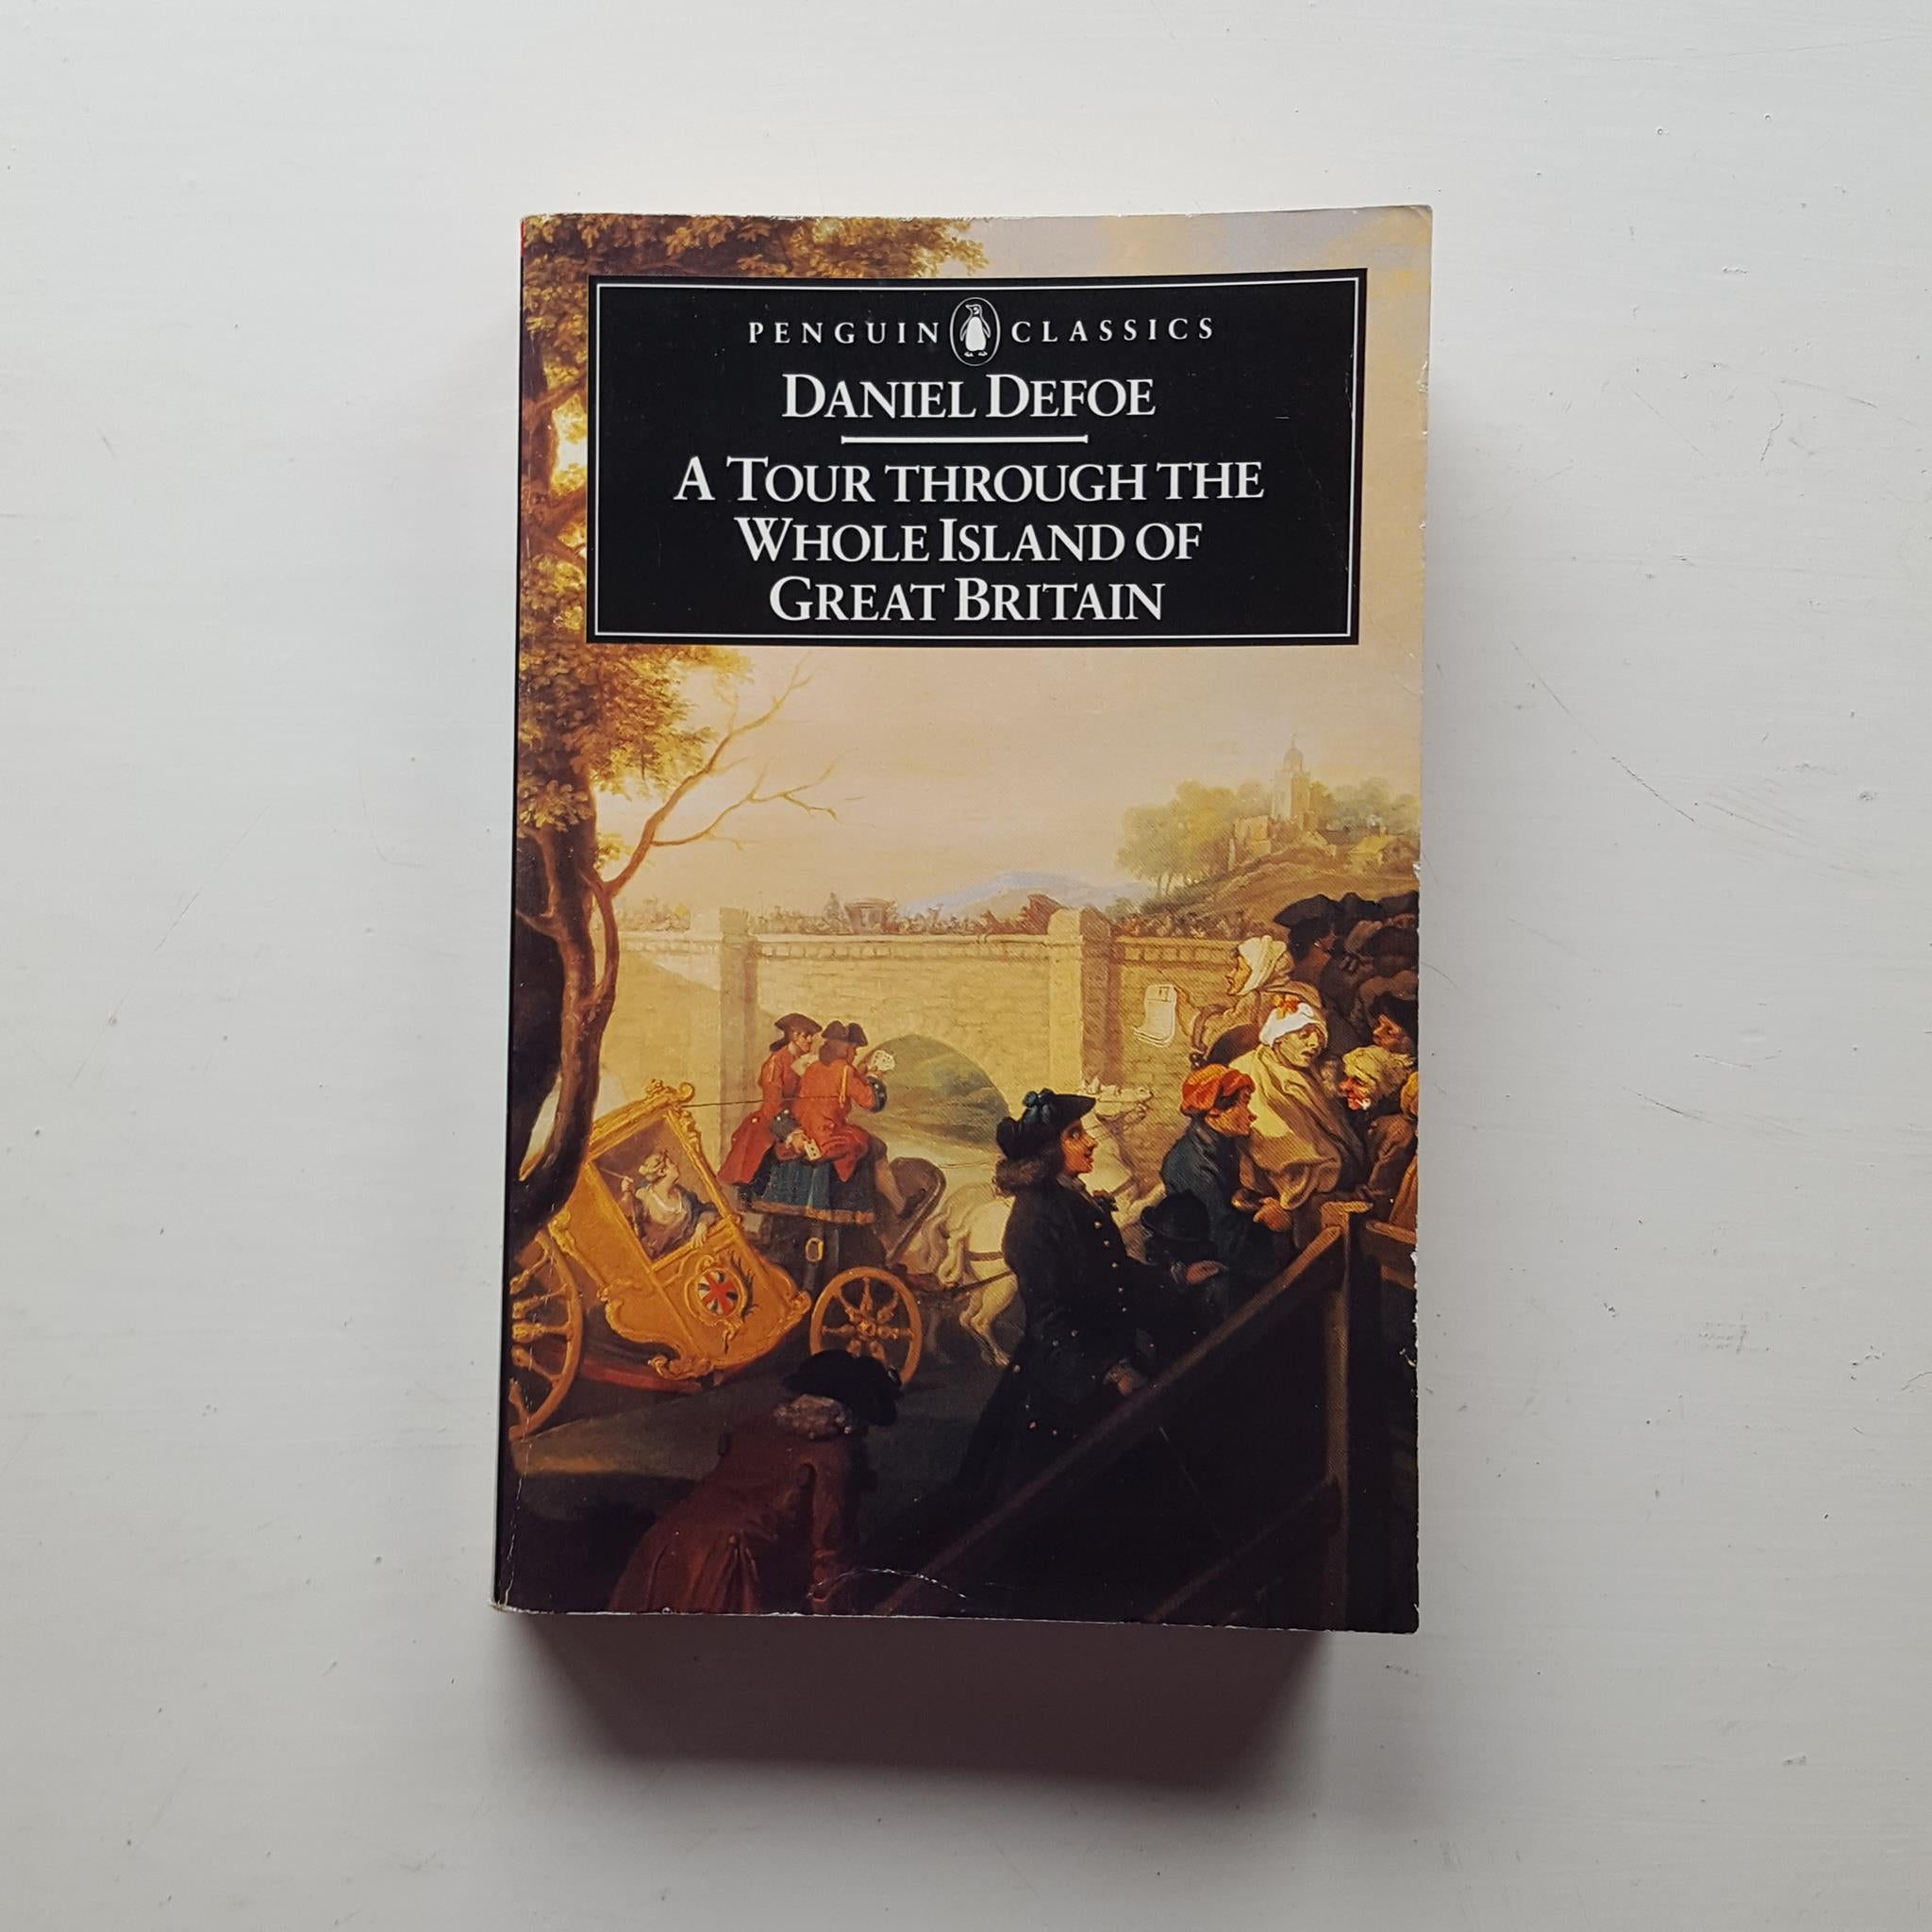 A Tour Through the Whole Island of Great Britain by Daniel Defoe